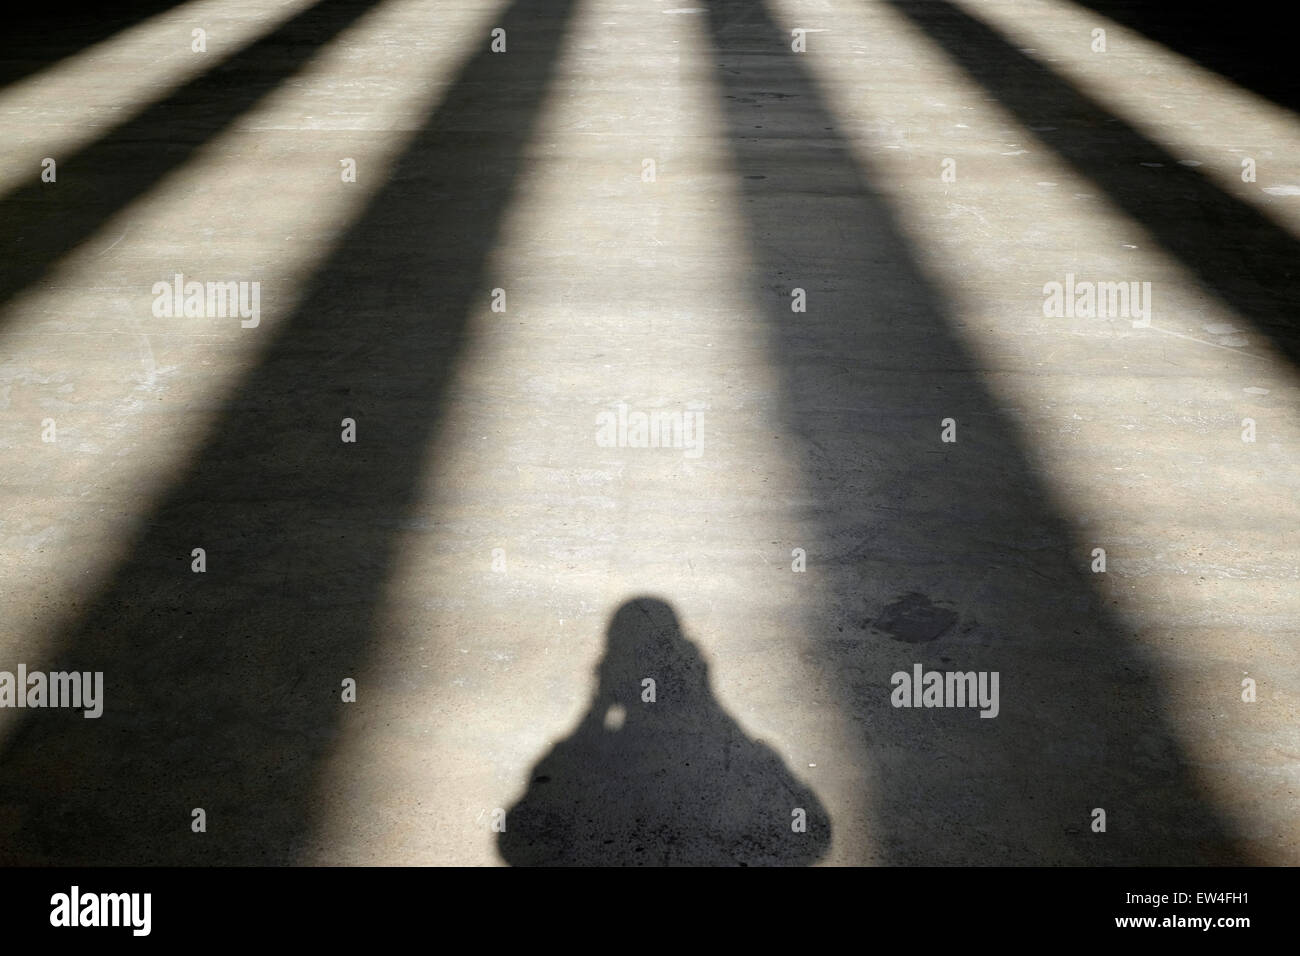 Self-portrait in shadows - Stock Image